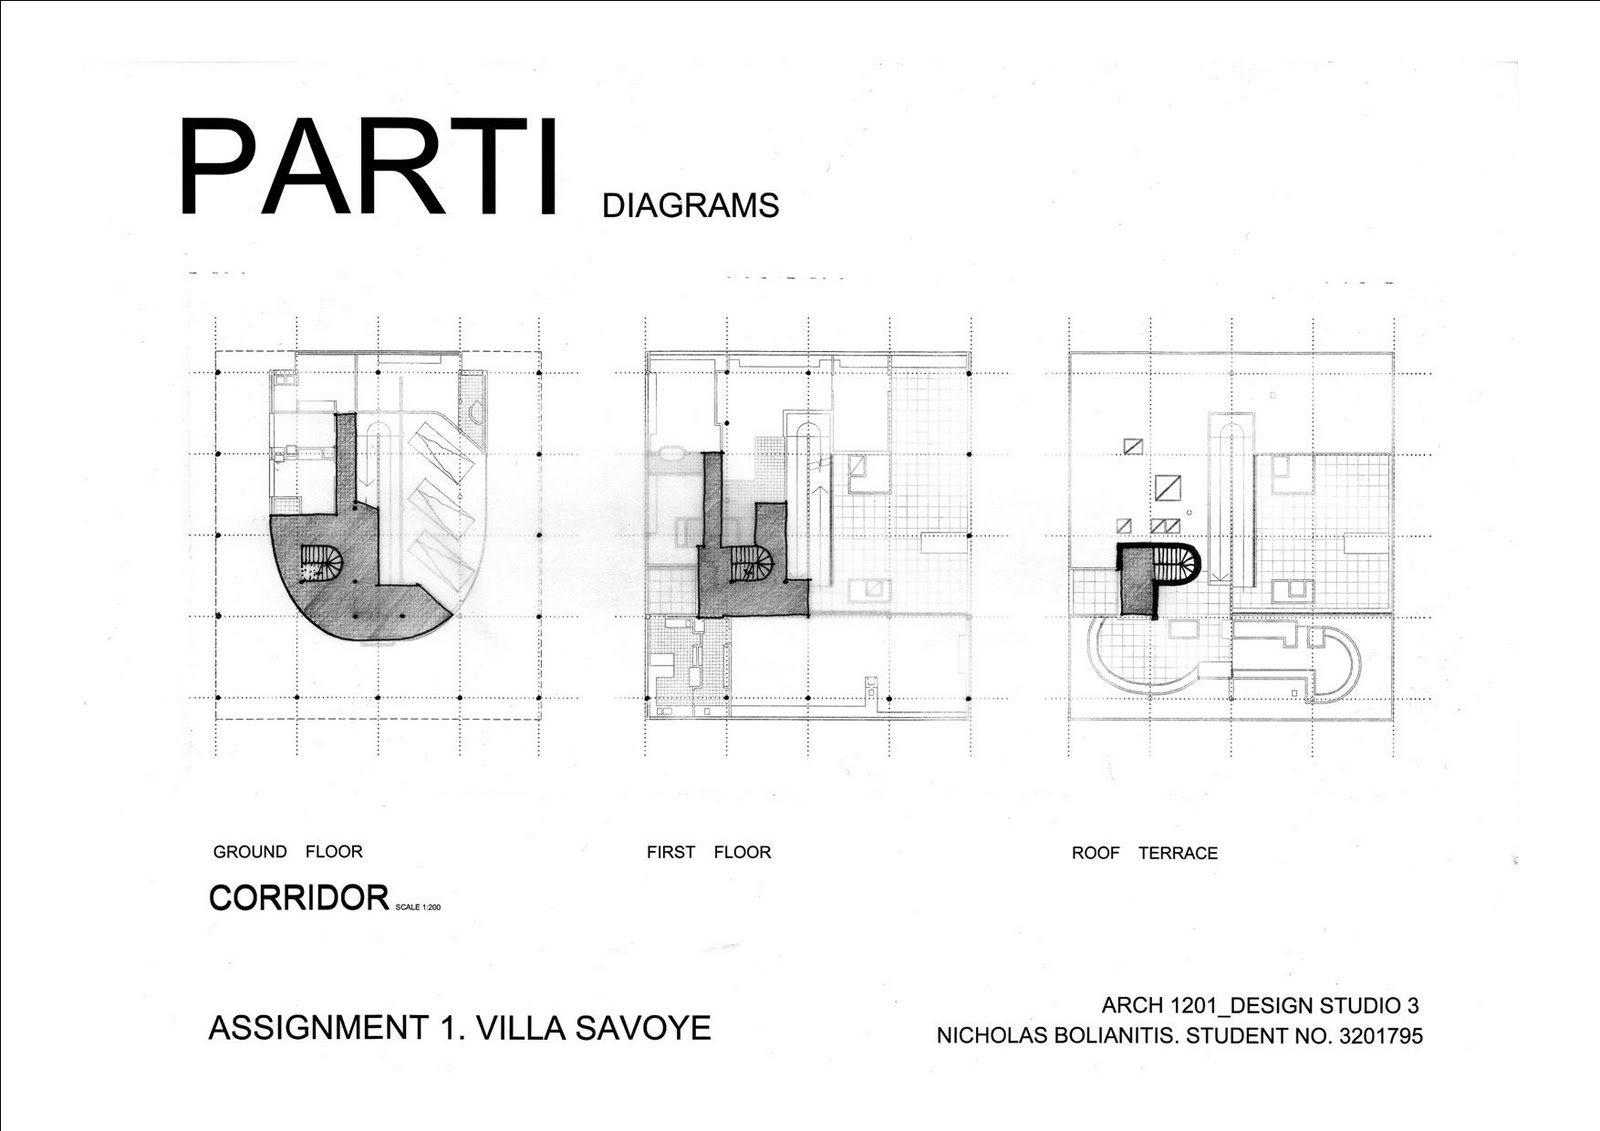 nicholas bolianitis final drawings parti and poche : parti diagram - findchart.co